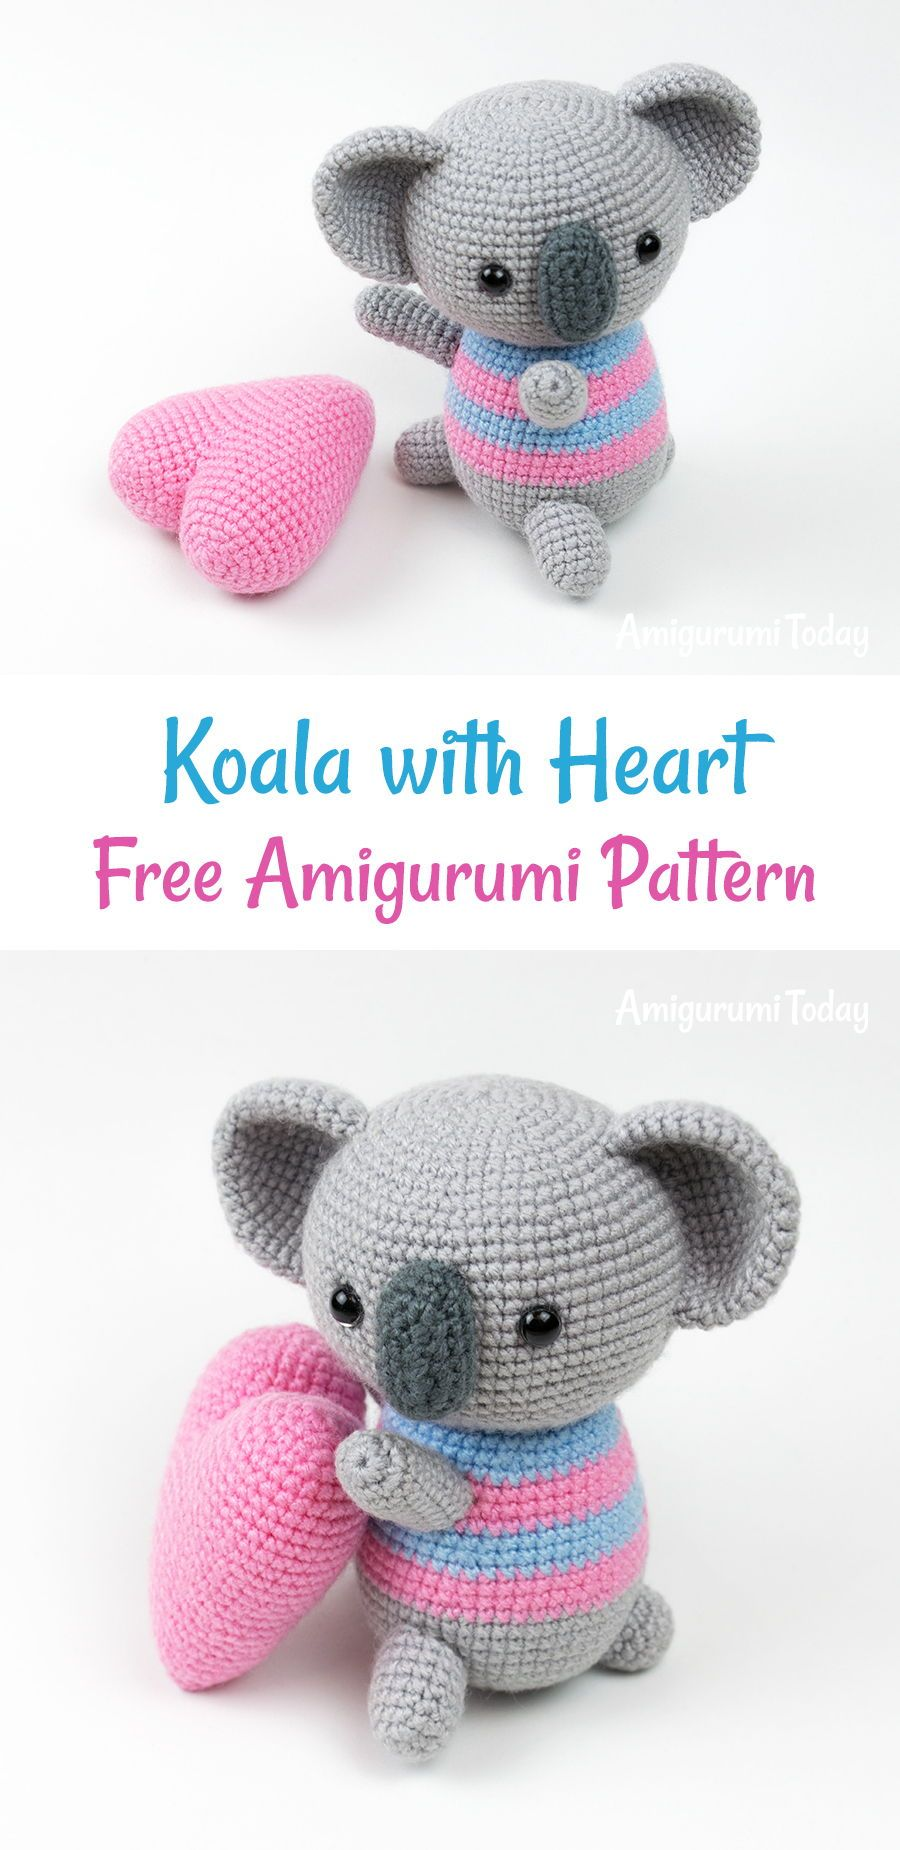 Amigurumi koala with heart pattern | CRAFTS - Crochet & Knitting ...